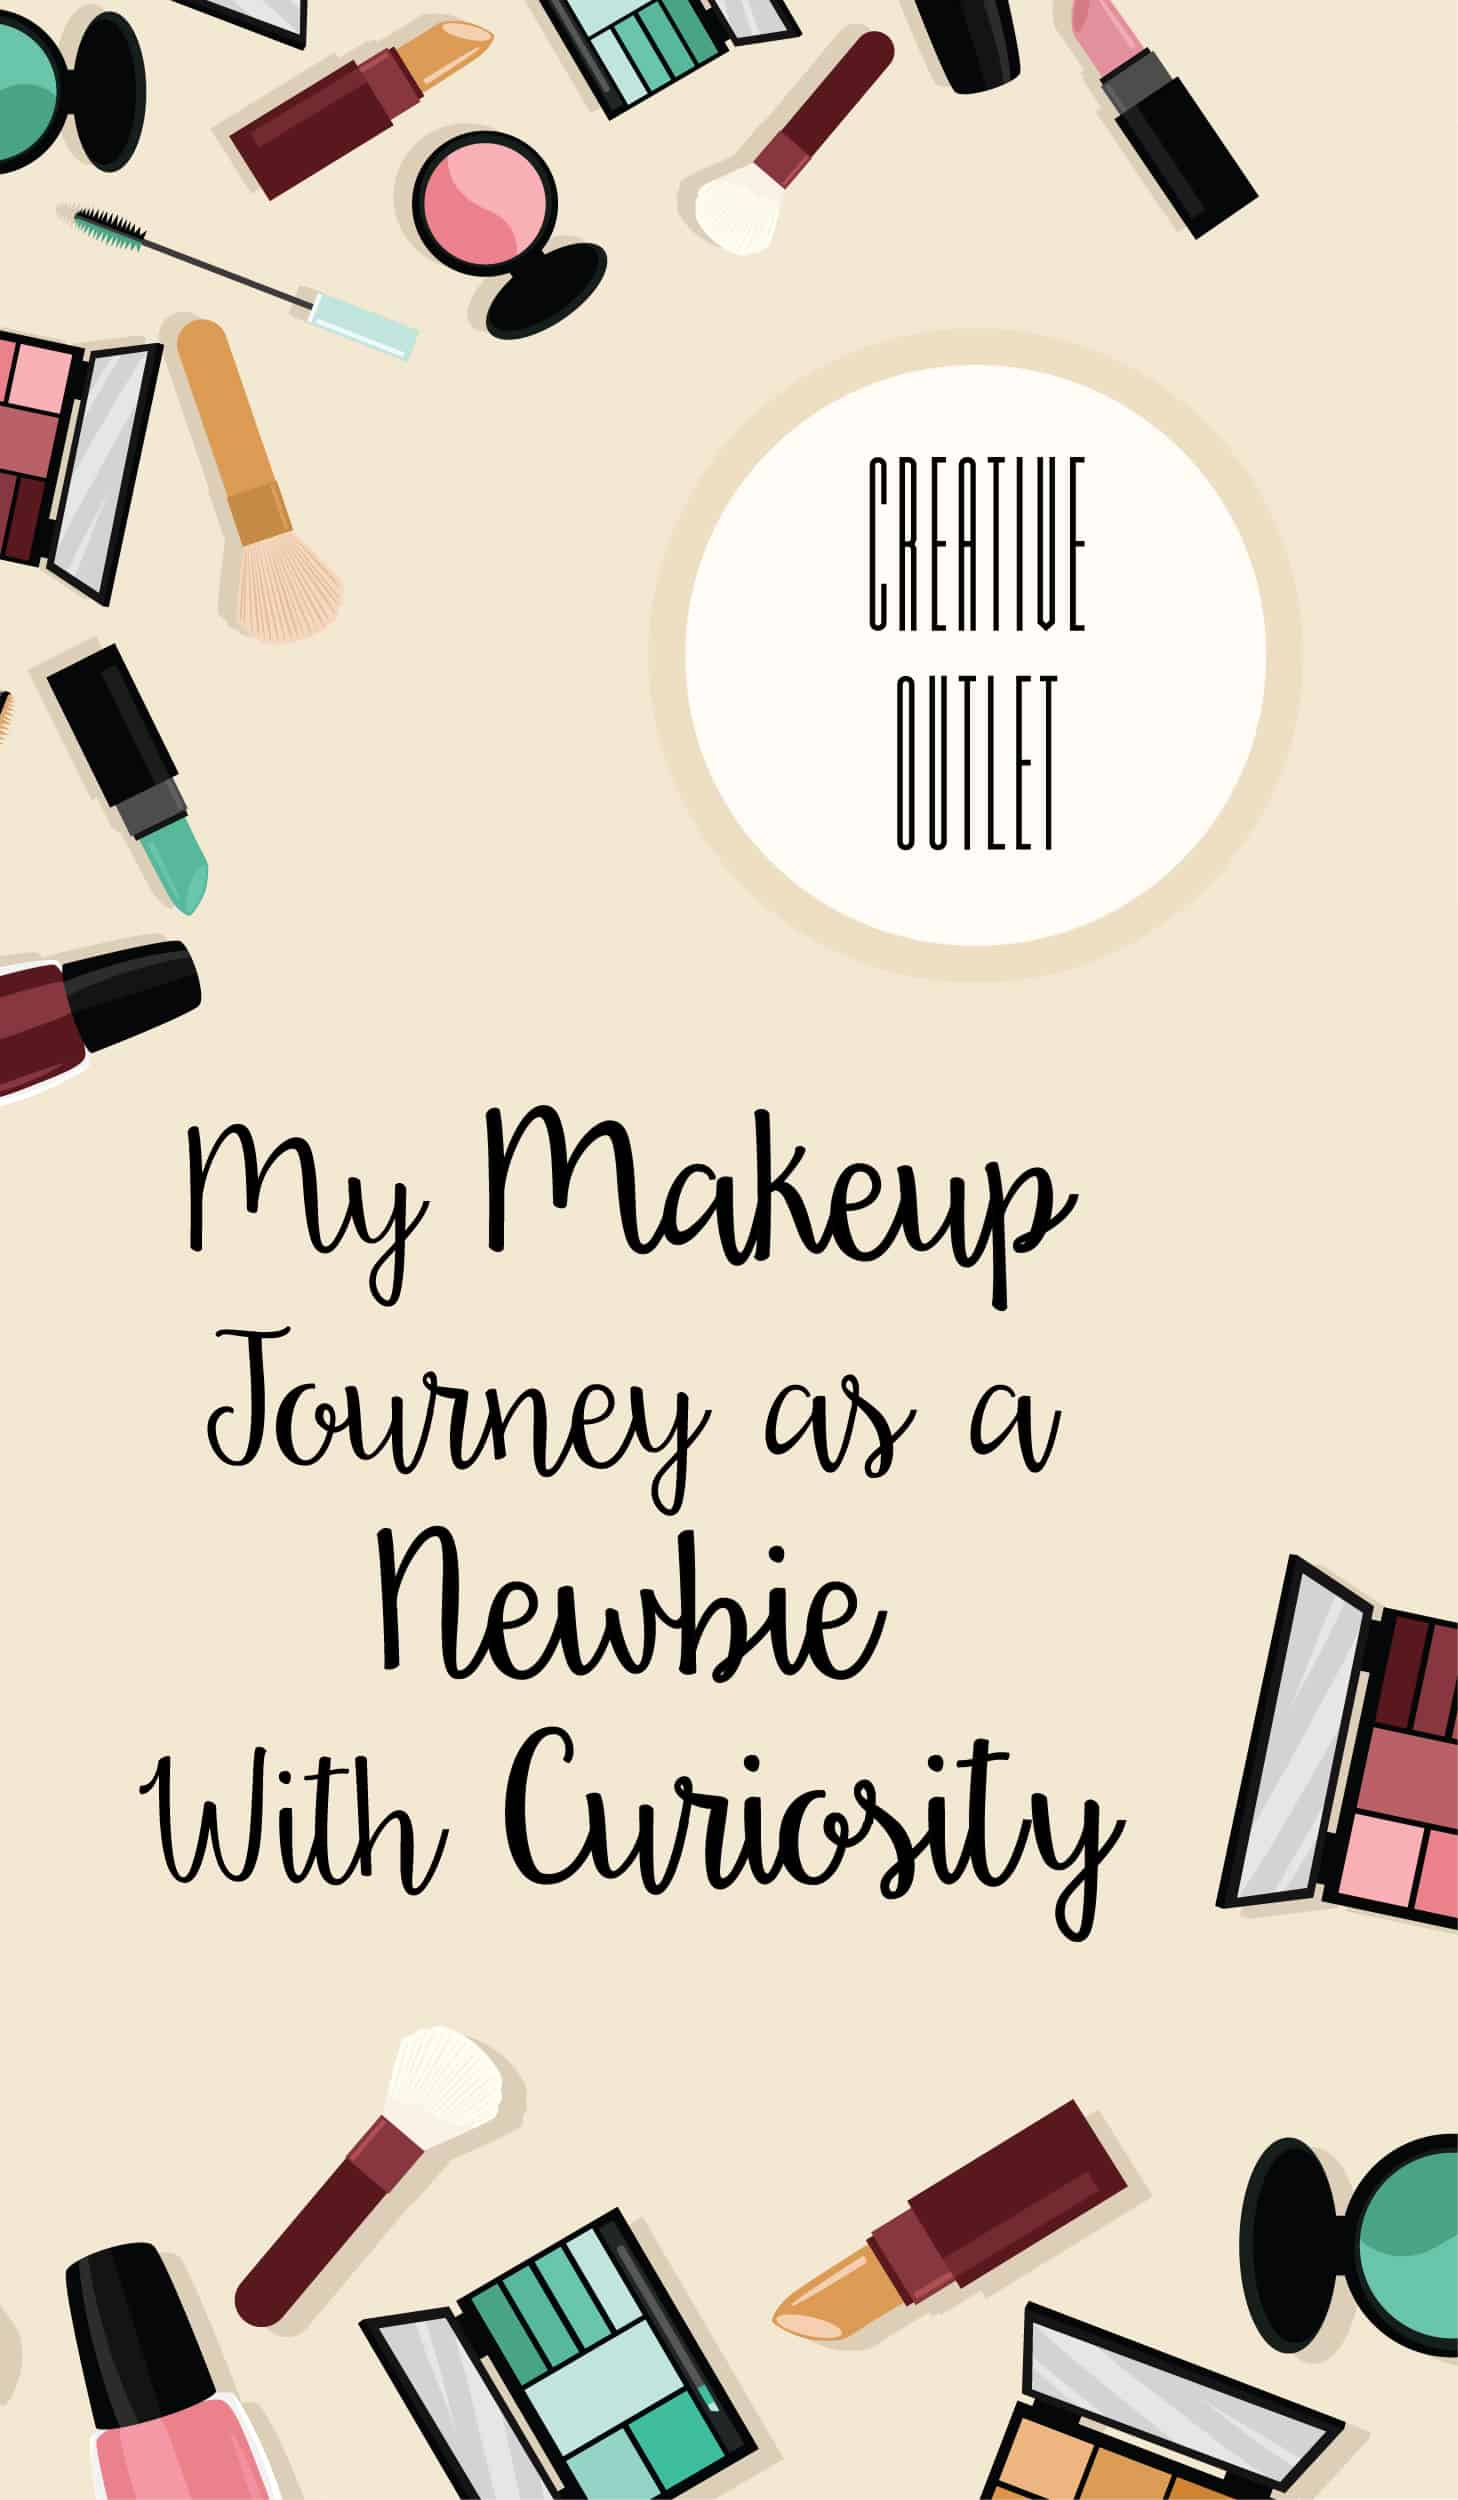 "<span class=""dojodigital_toggle_title"">Creative Outlet 